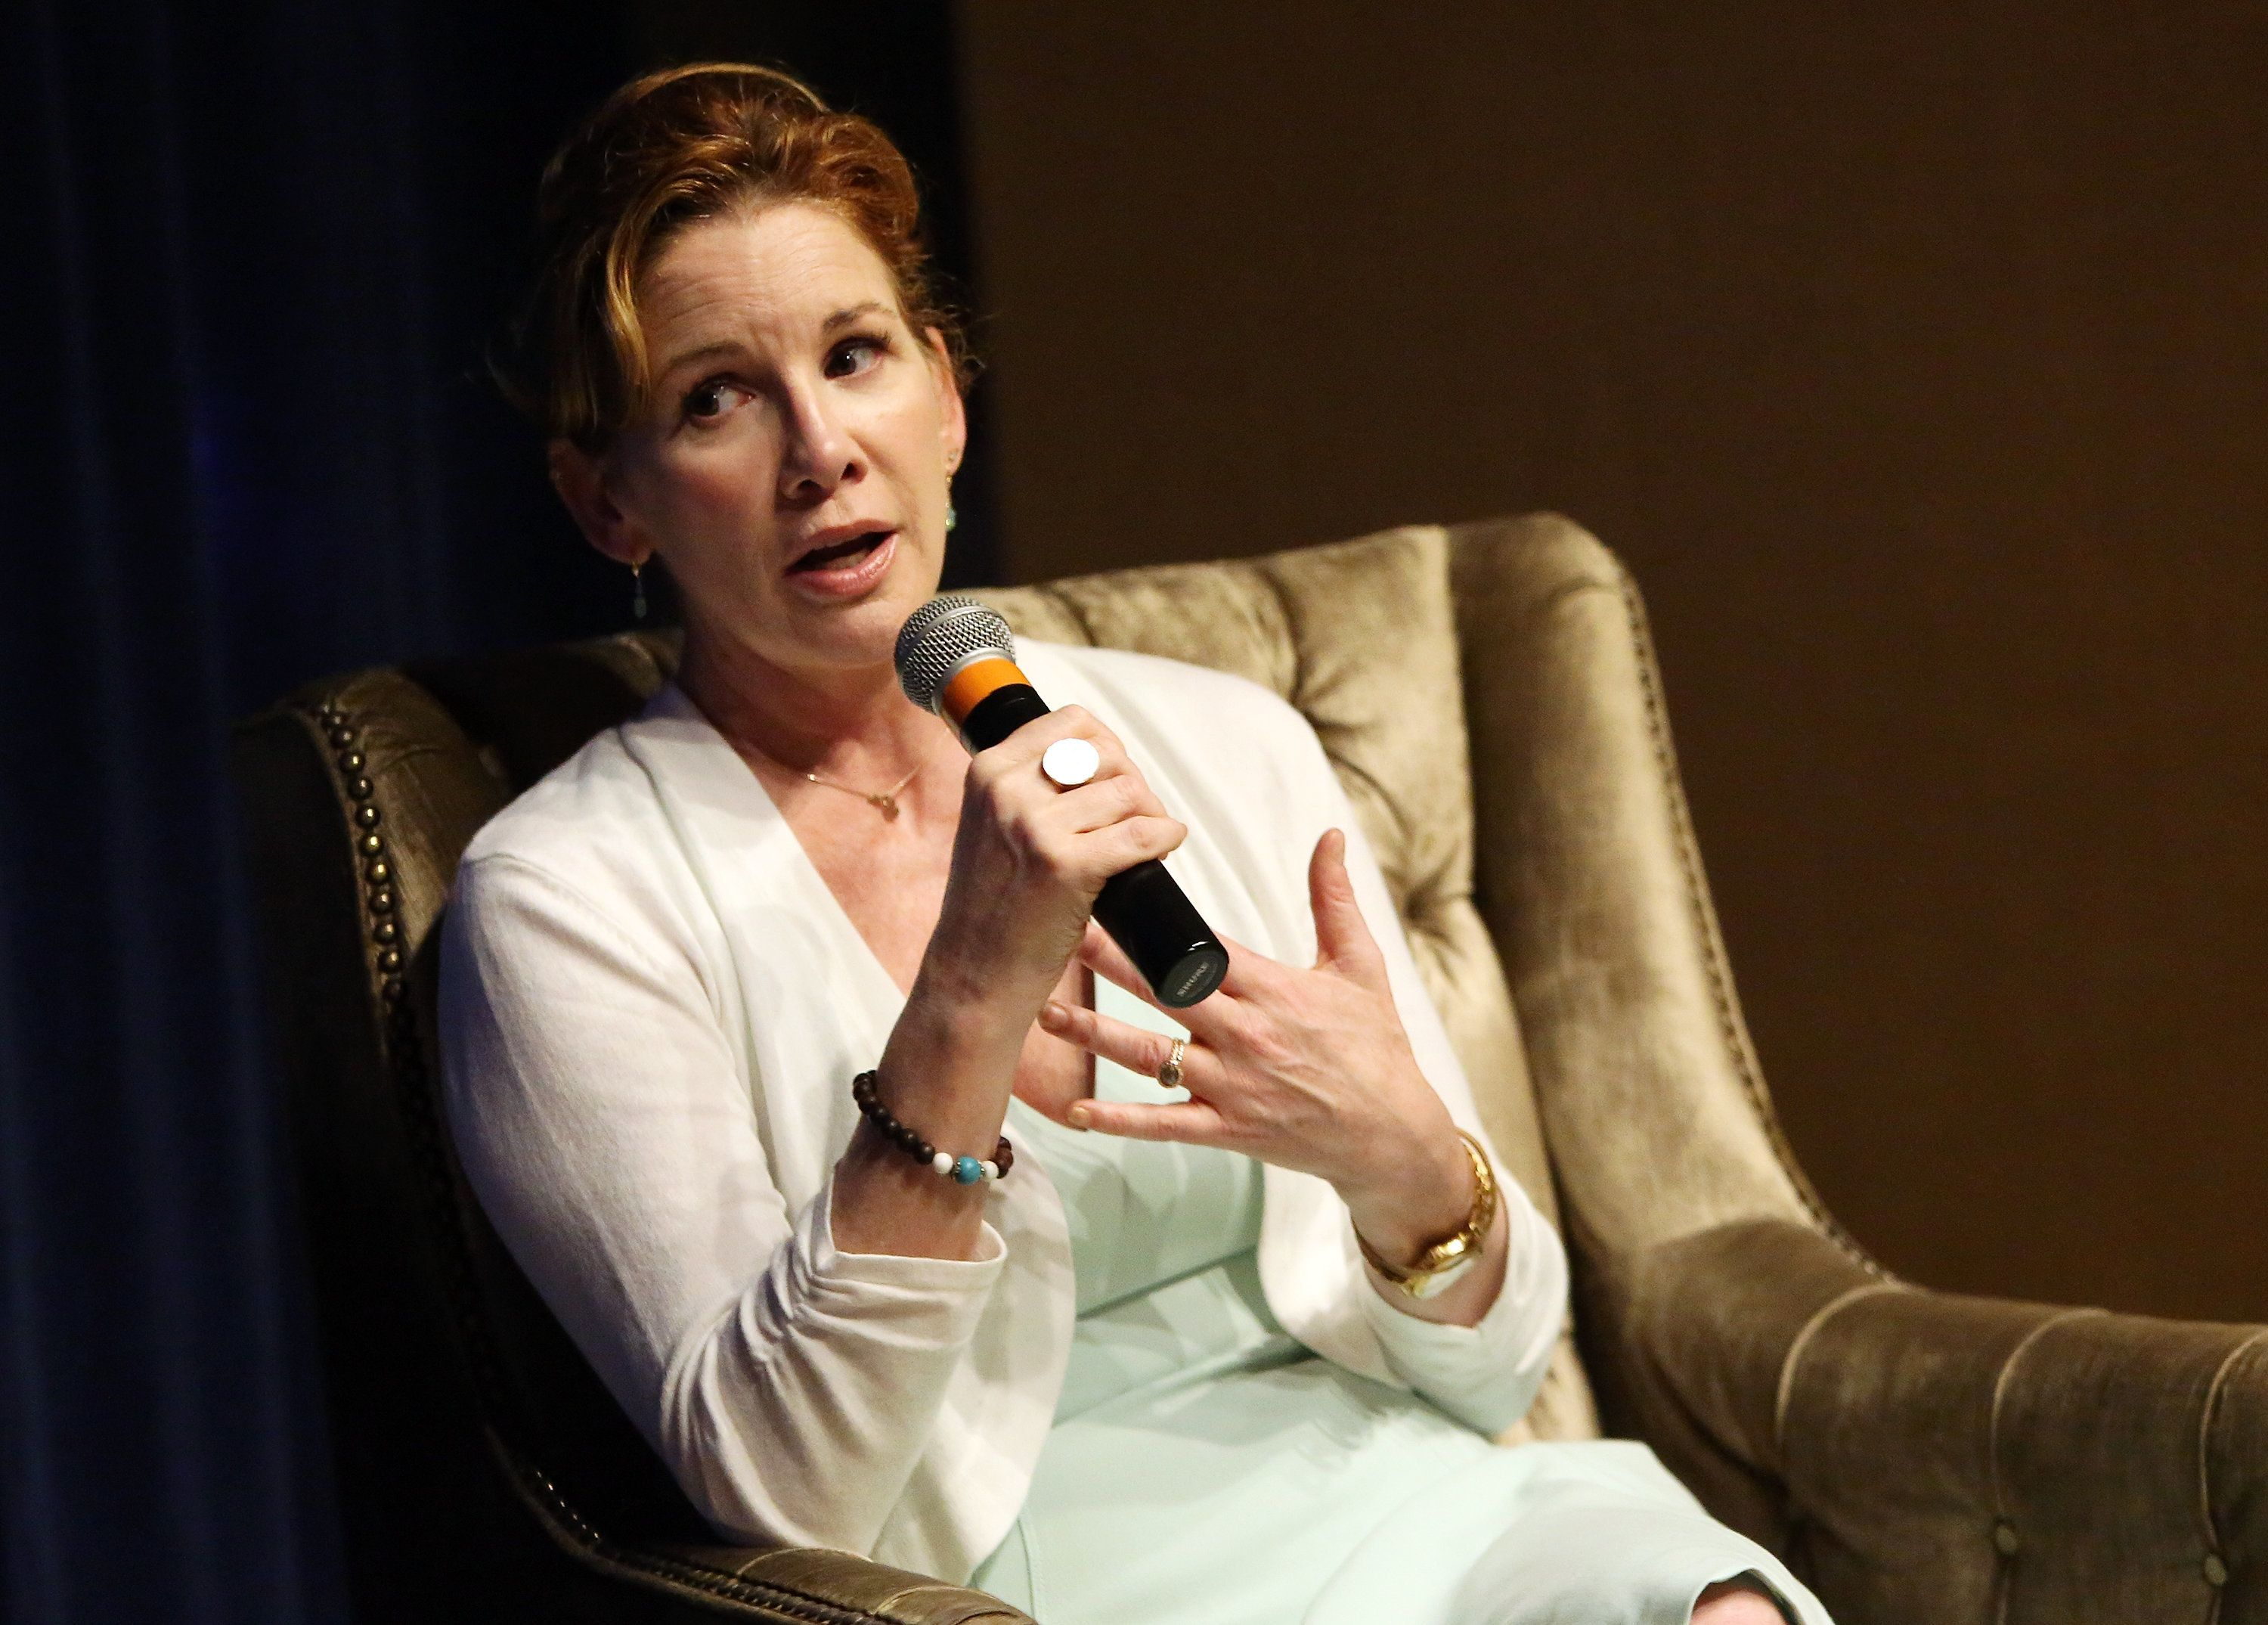 NEW YORK, NY - APRIL 22:  Actress, director, and 2016 Democratic candidate for Michigan's 8th congressional district Melissa Gilbert speaks at the Women In Business Breakfast With Melissa Gilbert at The Core Club on April 22, 2016 in New York City.  (Photo by Monica Schipper/Getty Images)